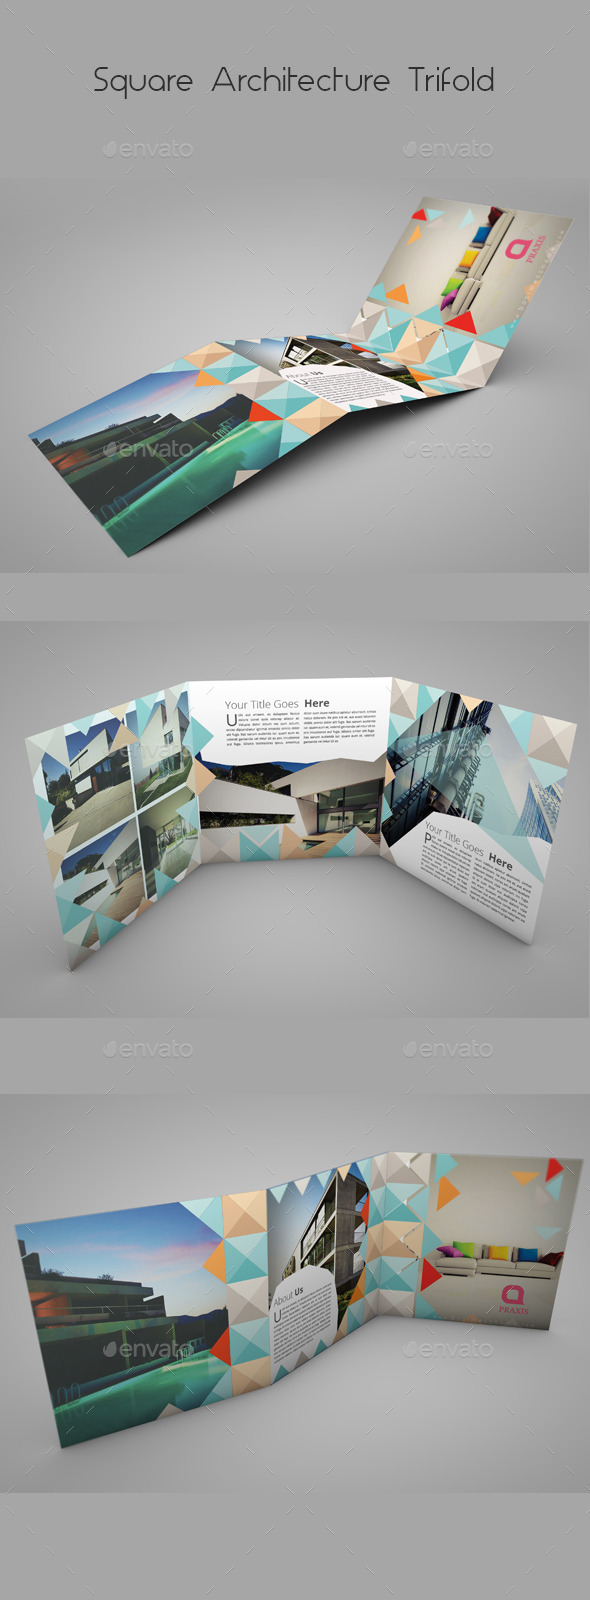 Square Architecture Trifold - Informational Brochures